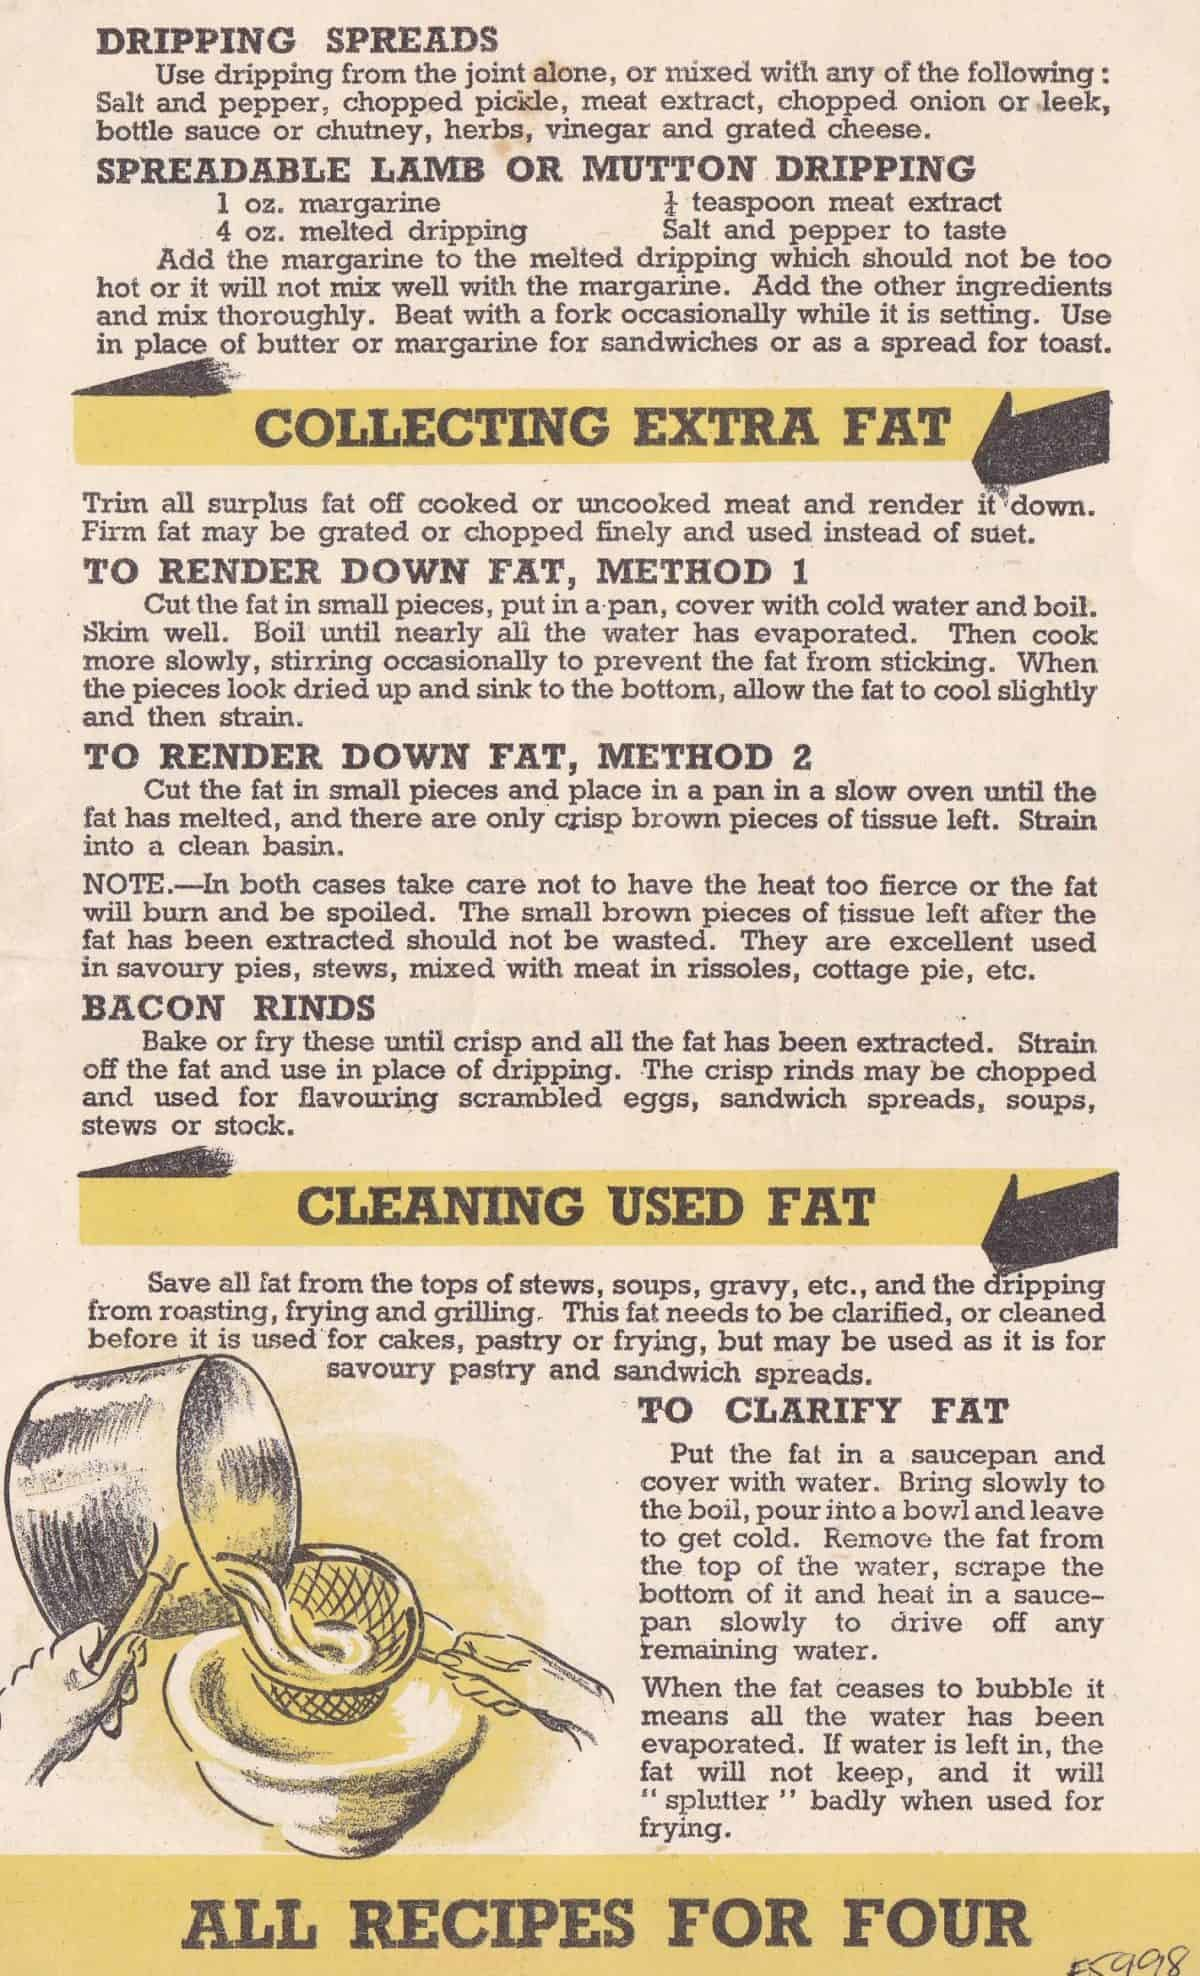 WW2 18 F5998.03 Making the most of the Fat Ration Leaflets